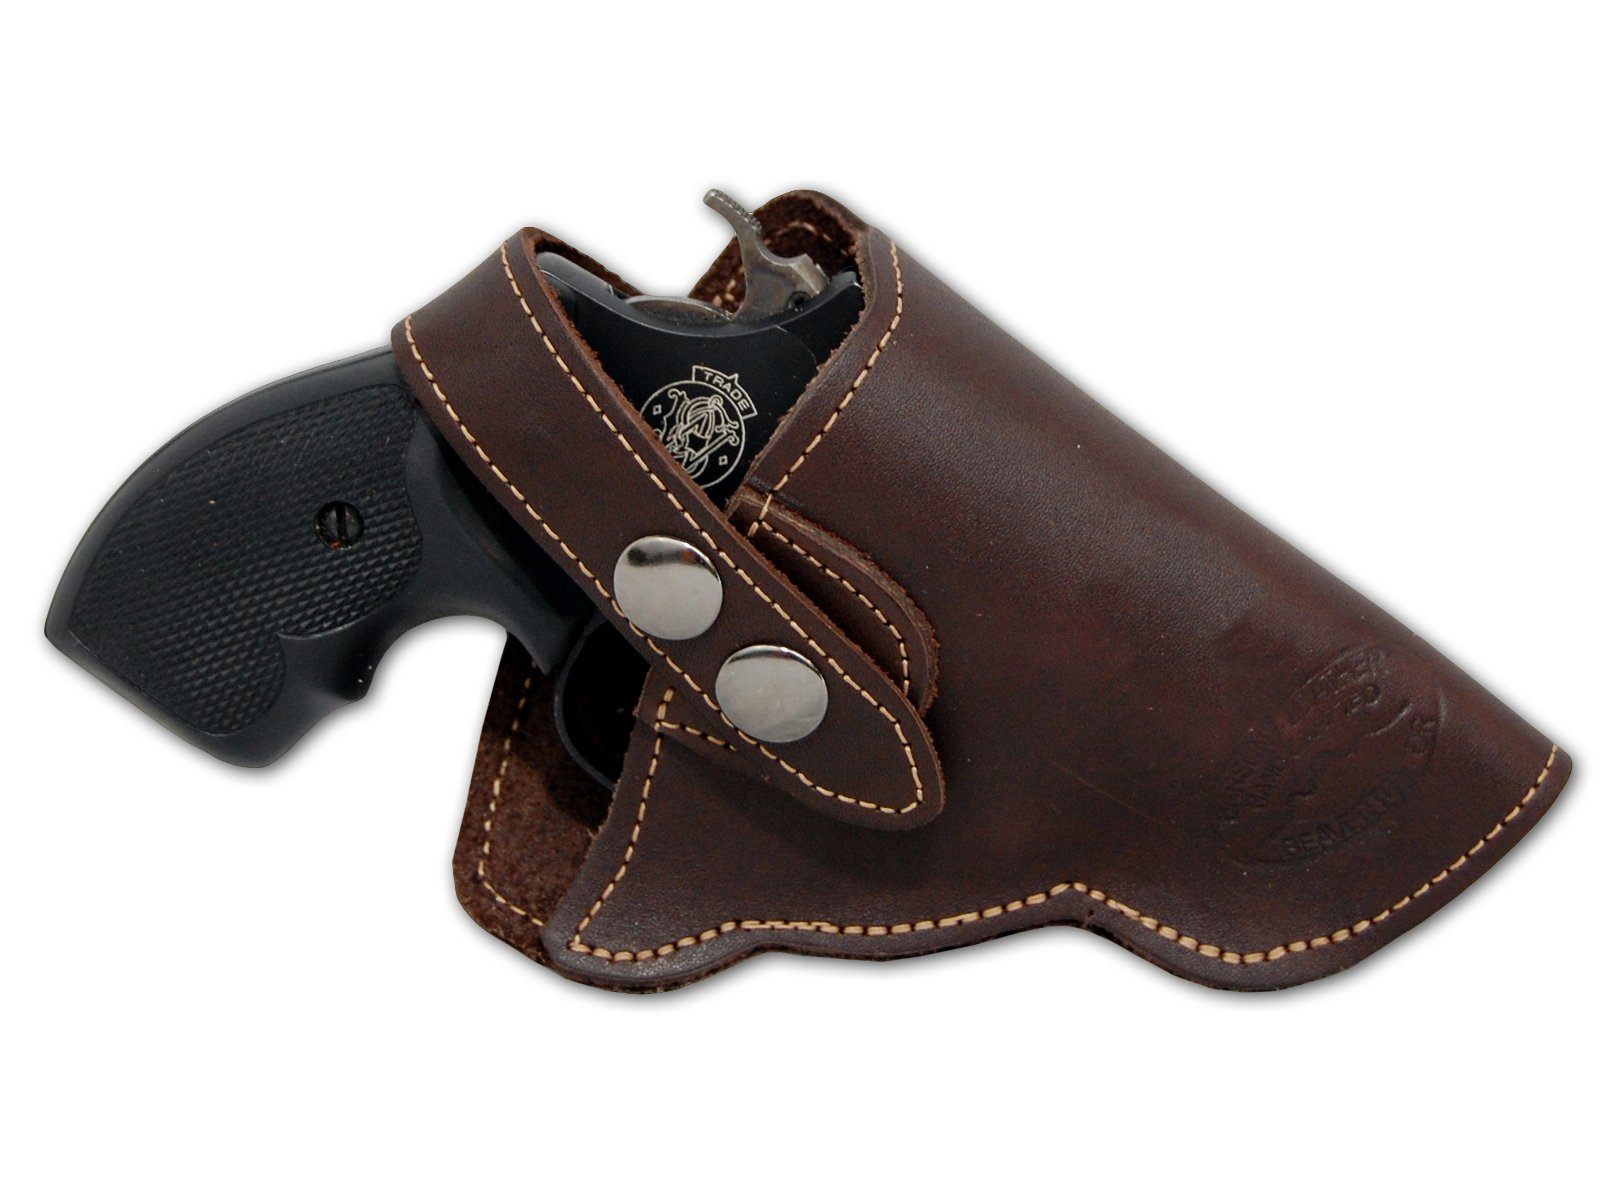 "Barsony New Brown Leather OW Holster for Snub Nose 2"" 22 38 357 41 Revolvers"